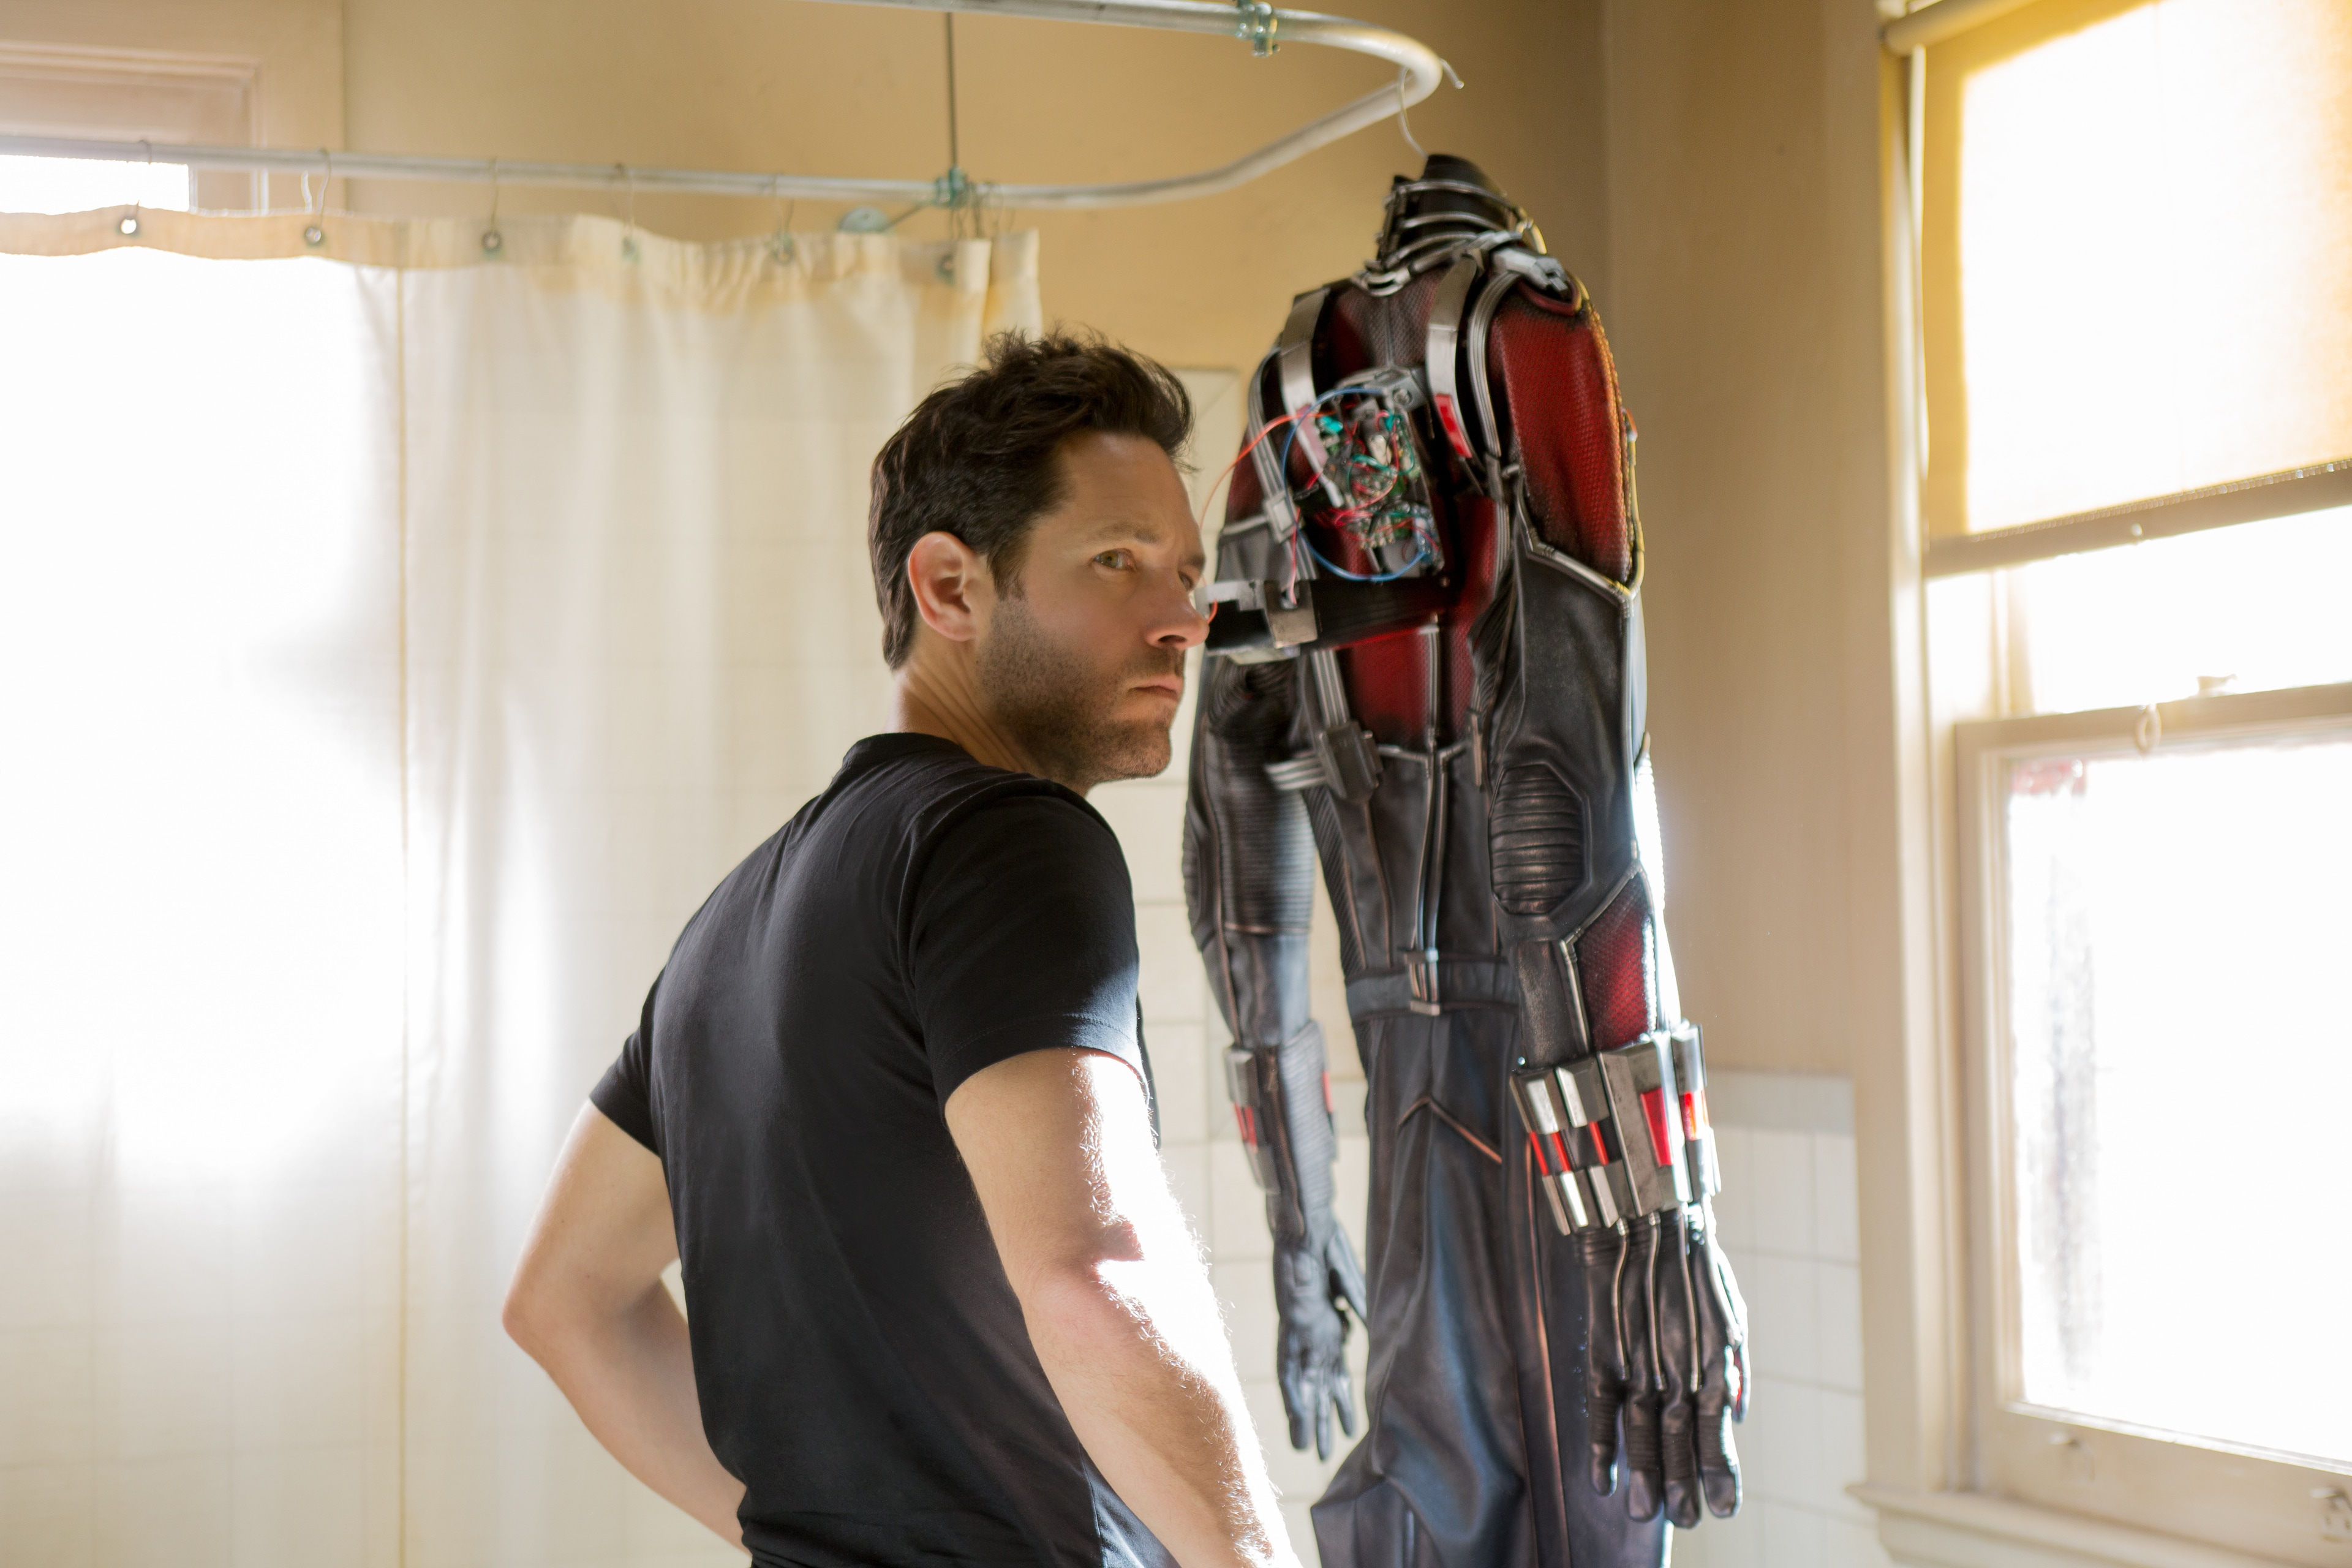 Paul Rudd (as Scott Lang) looking at the Ant-Man suit